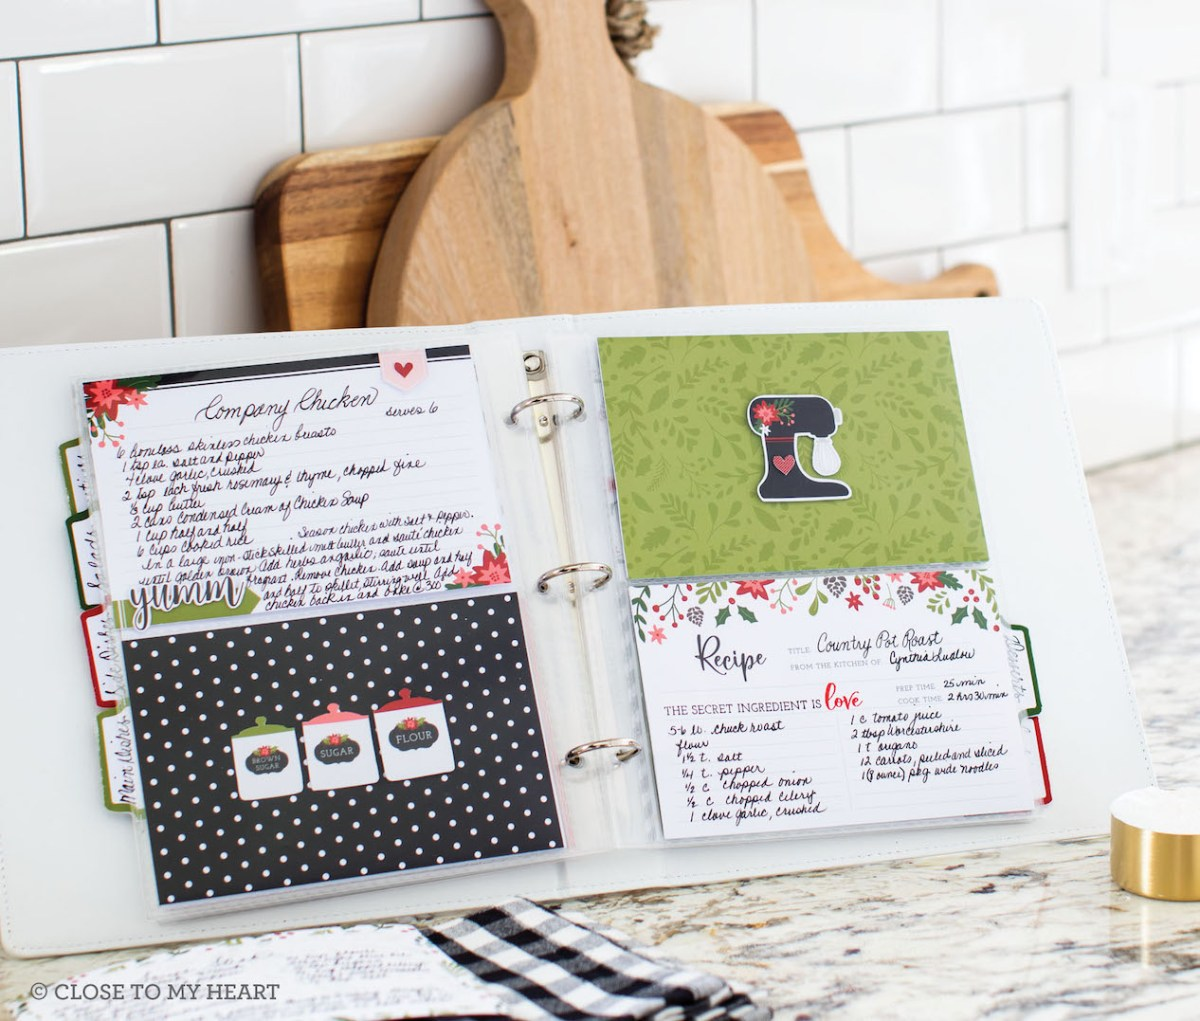 Last Call for Holiday Expressions #ctmh #closetomyheart #scrapbooking #cardmaking #papercrafting #diy #Christmas #holiday #recipebook #holidaykitchen